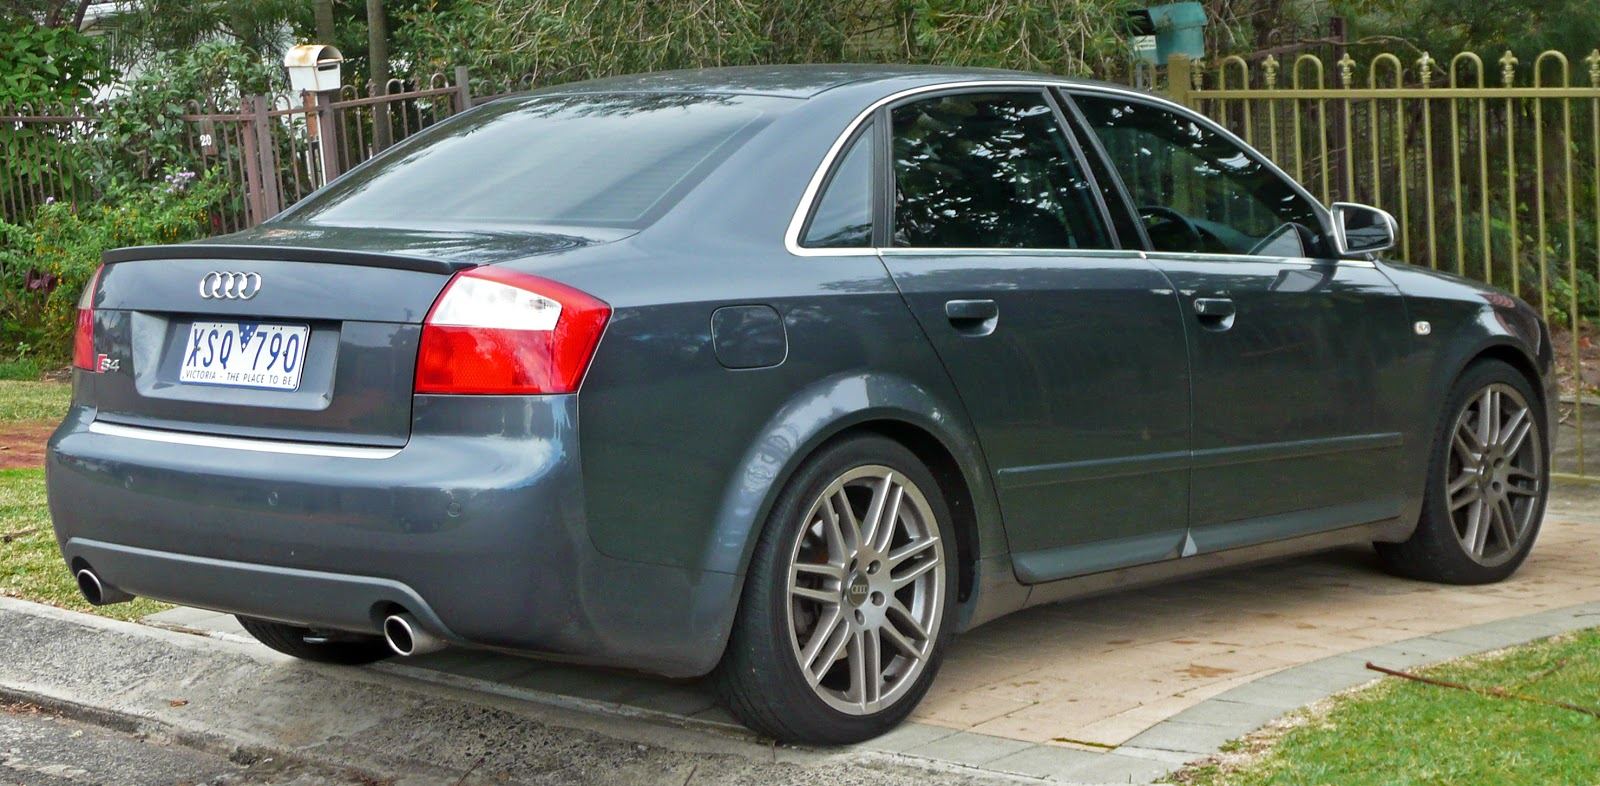 Audi S4 II (B6) 2003 - 2004 Station wagon 5 door #5